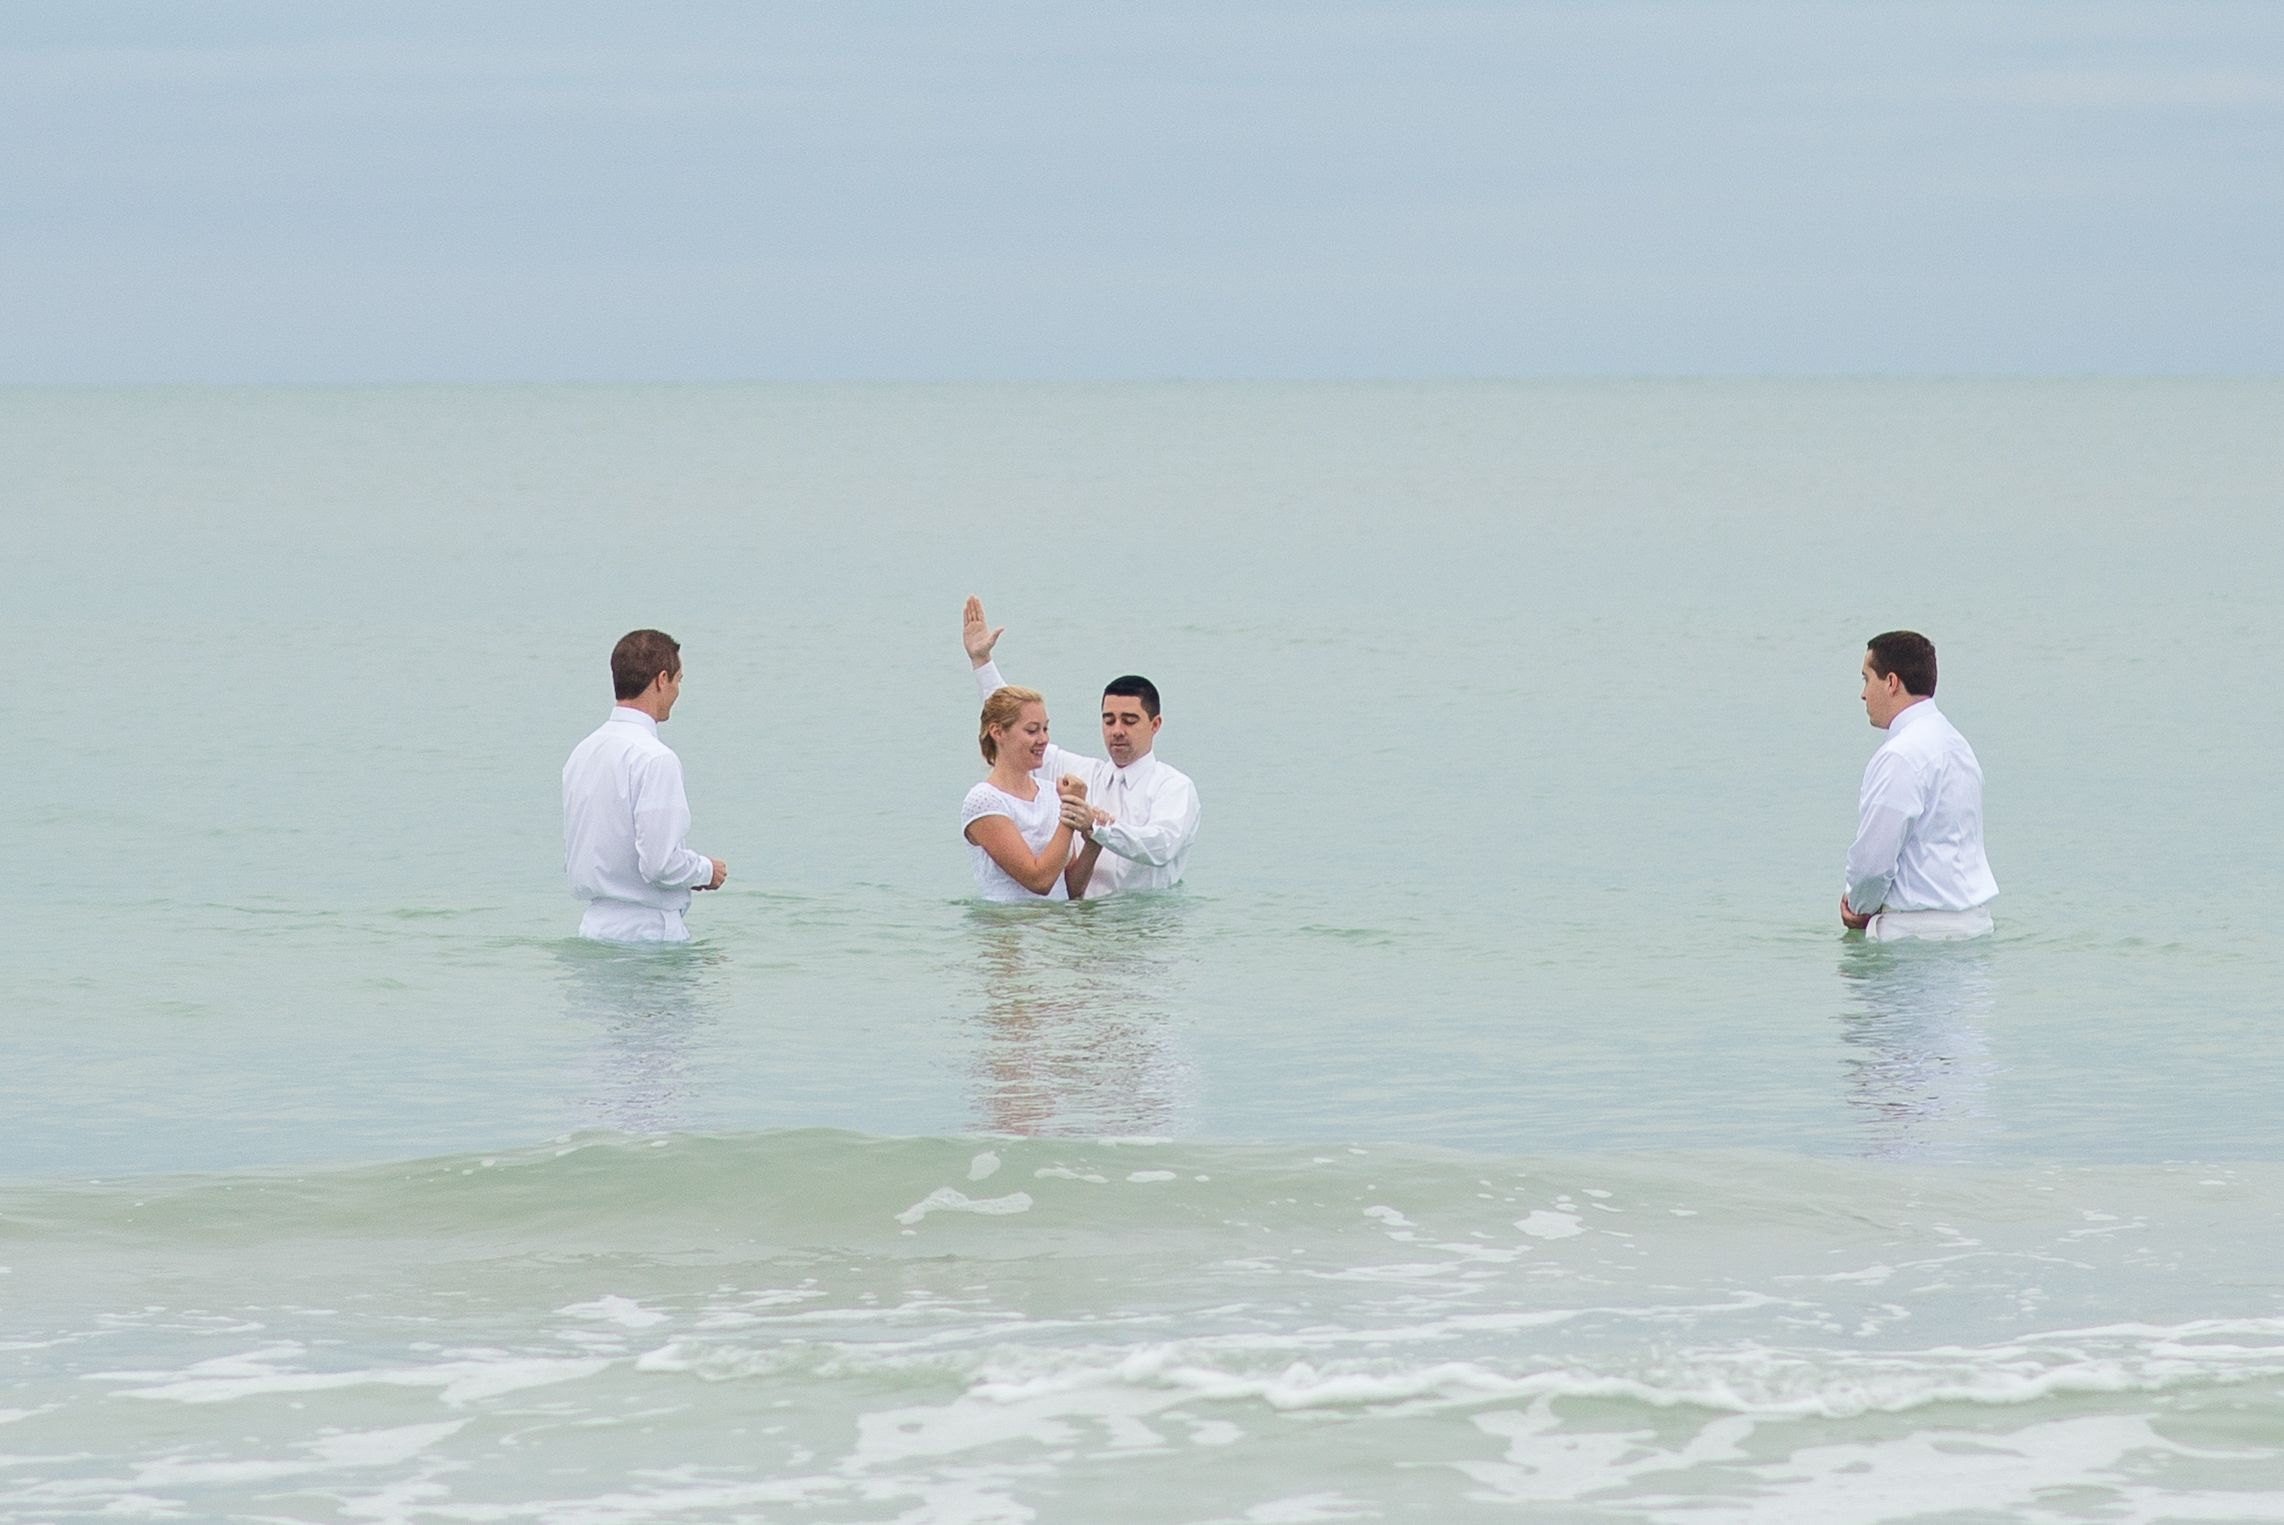 A young woman being baptized in the ocean.